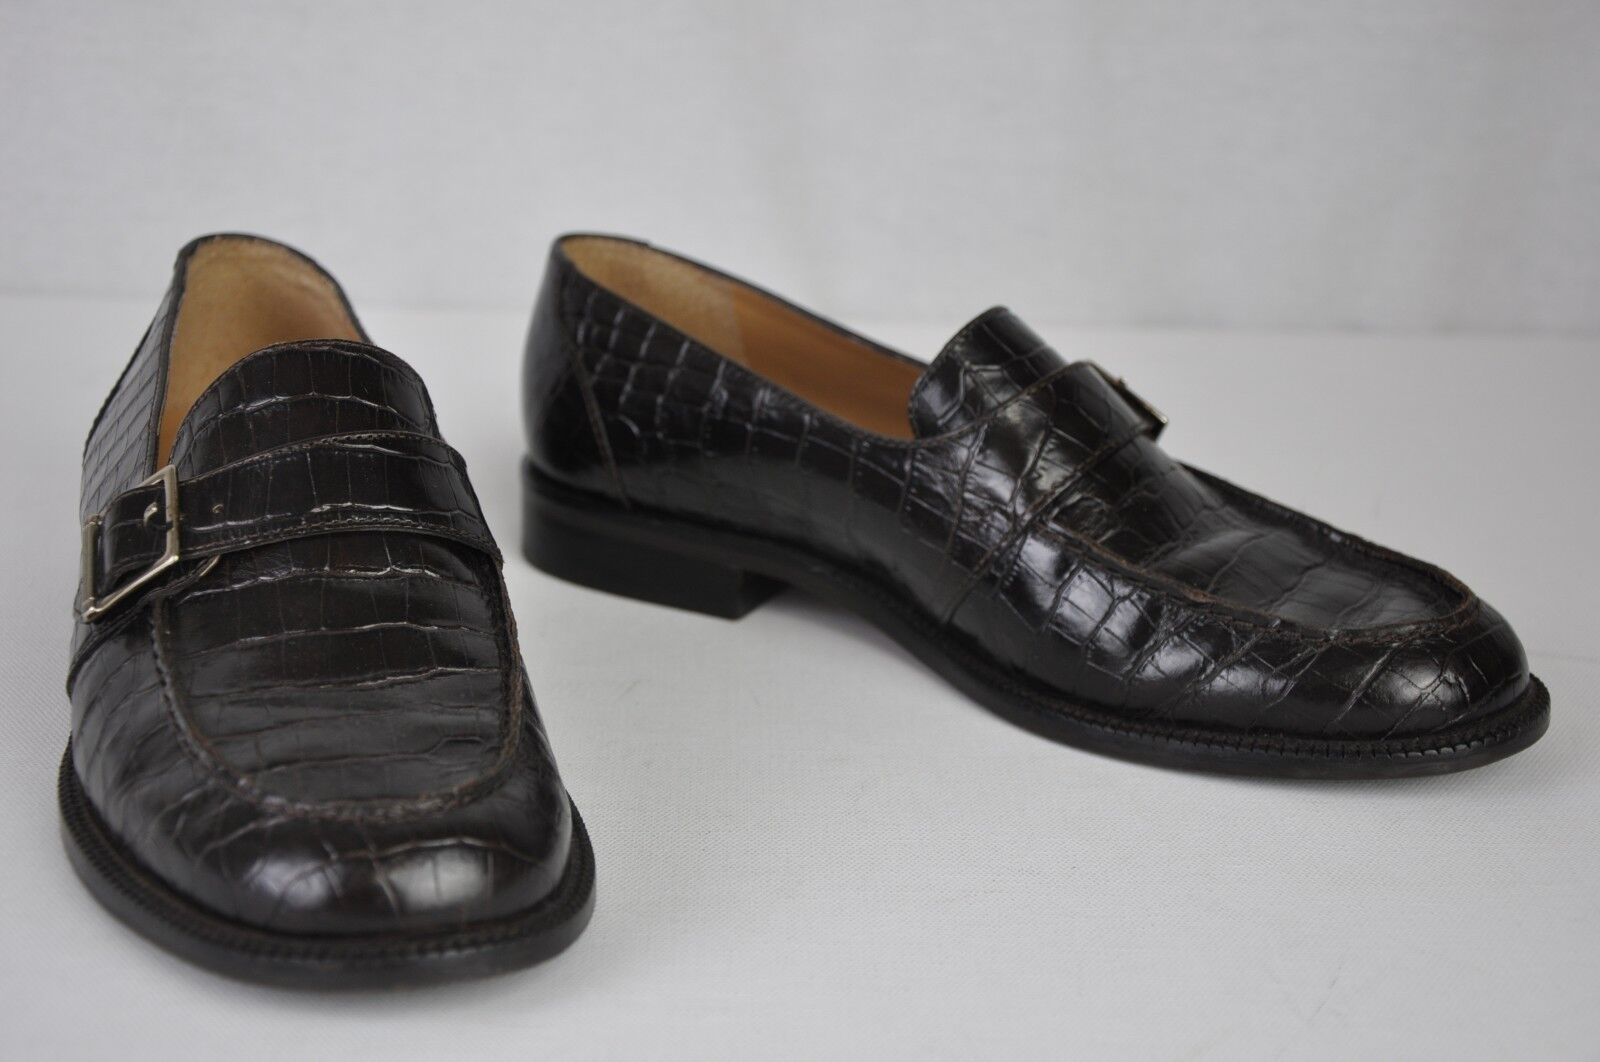 7.5B Ralph Lauren Black Leather Croc Print Moc Toe Slip On Career Loafer Flat